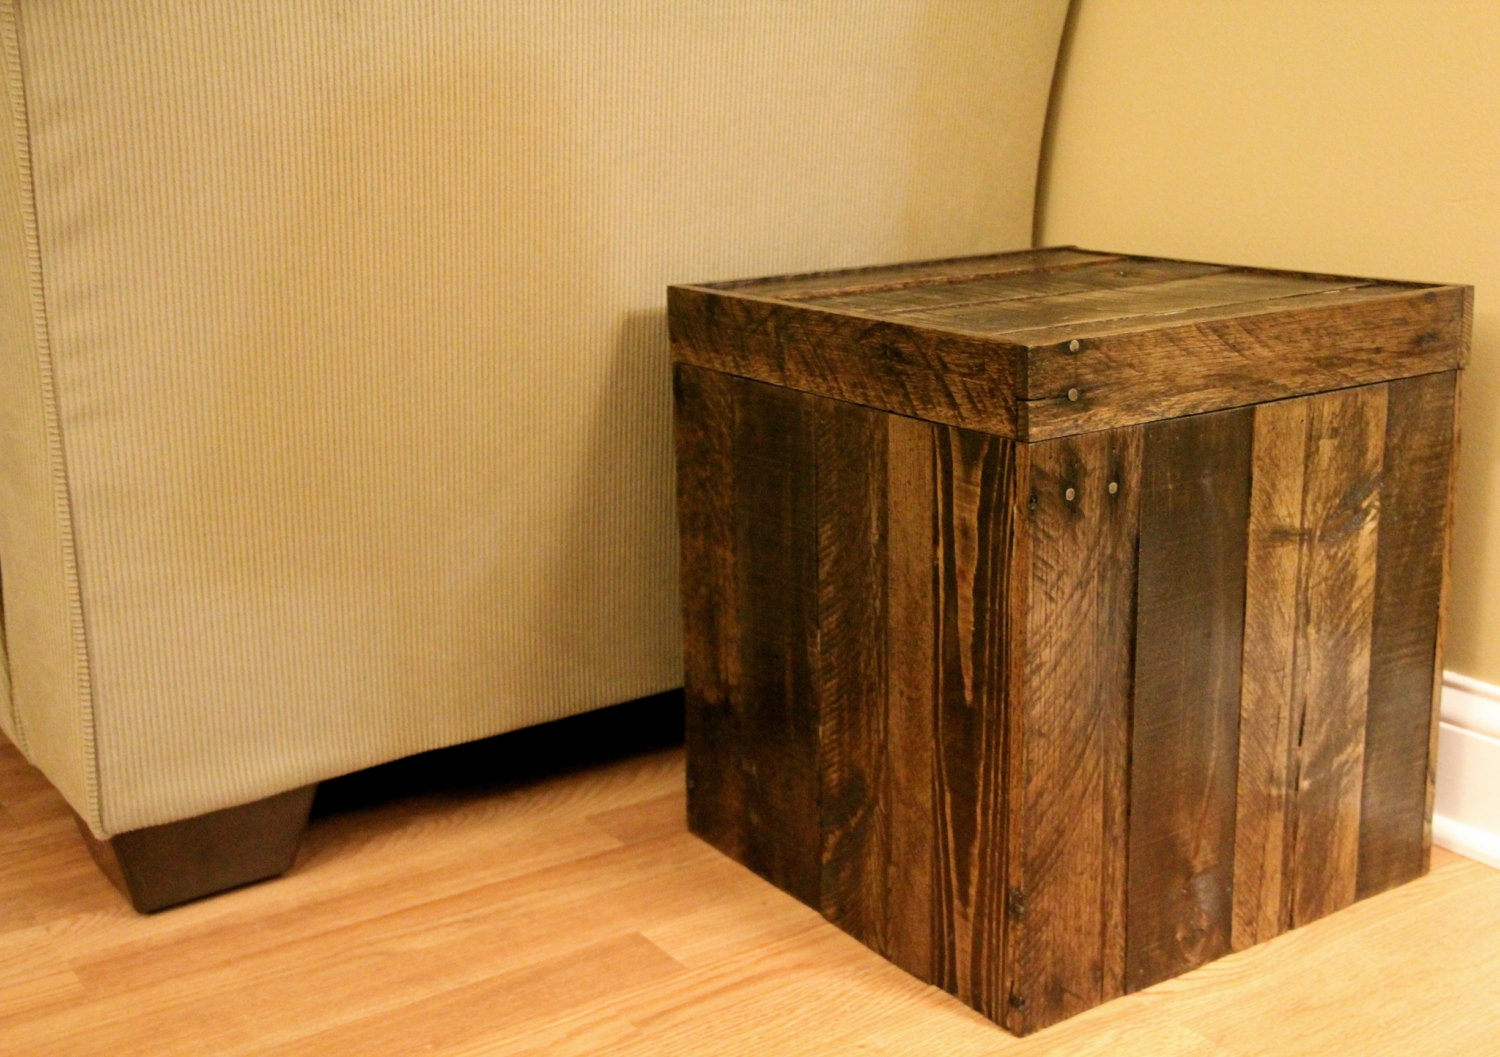 Reclaimed Pallet Wood Furniture Storage Cubed By Fasprojects